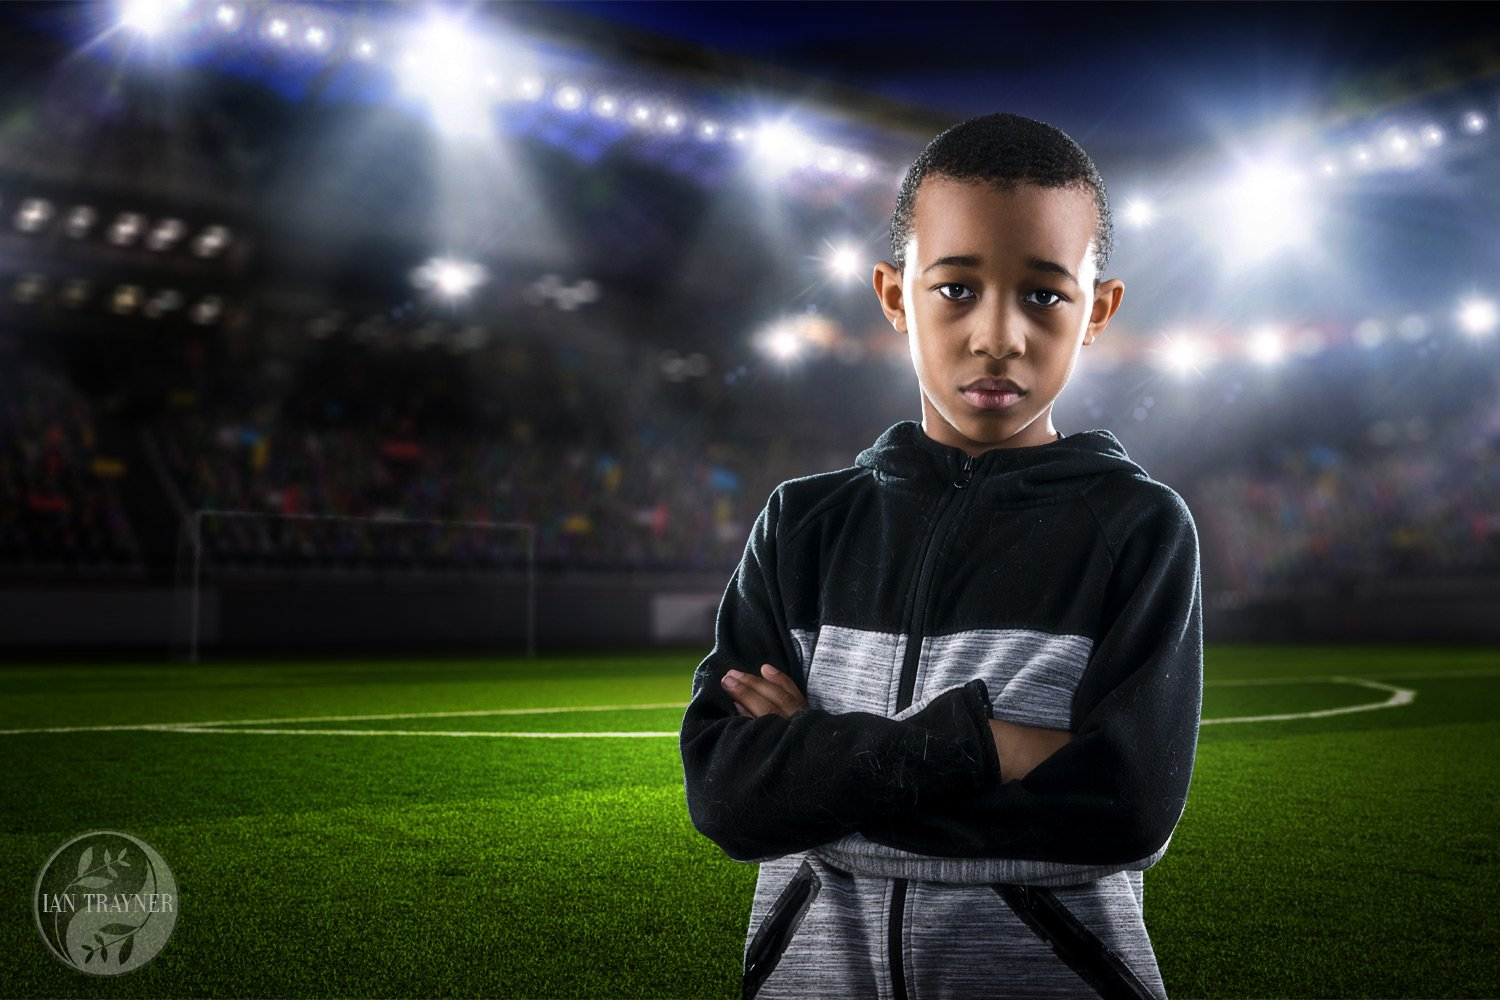 Creative family photography. Photo composite. Boy photographed in studio then inserted into a soccer stadium.